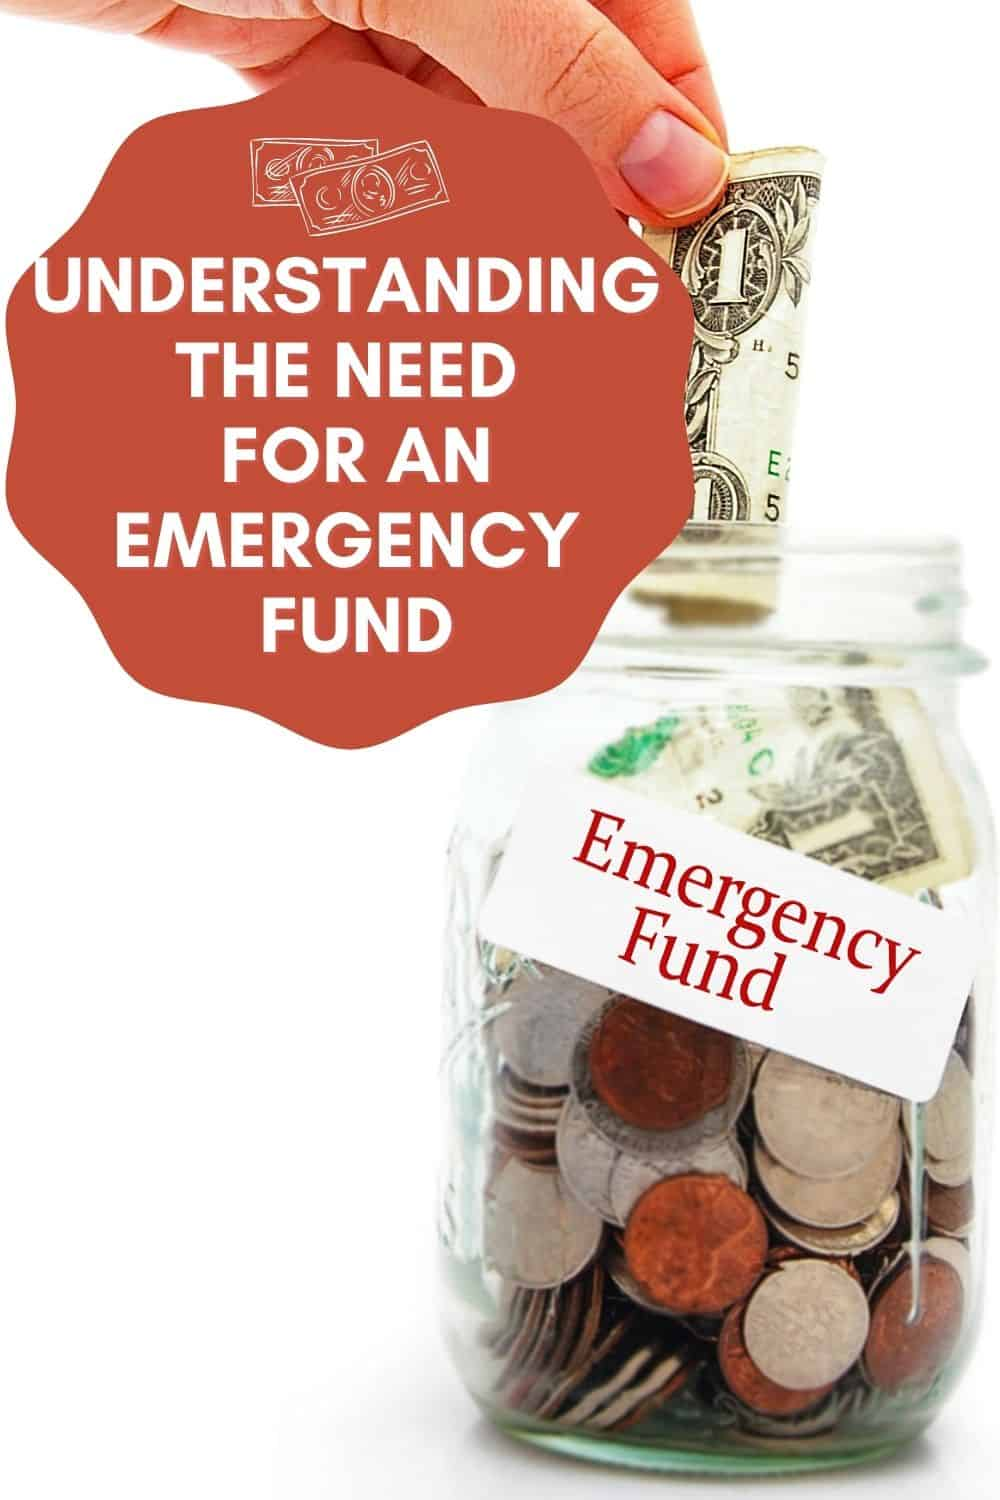 Find out the reasons not having an emergency fund sucks! Without an emergency fund, you are going to get into more debt and pay even more. via @mystayathome